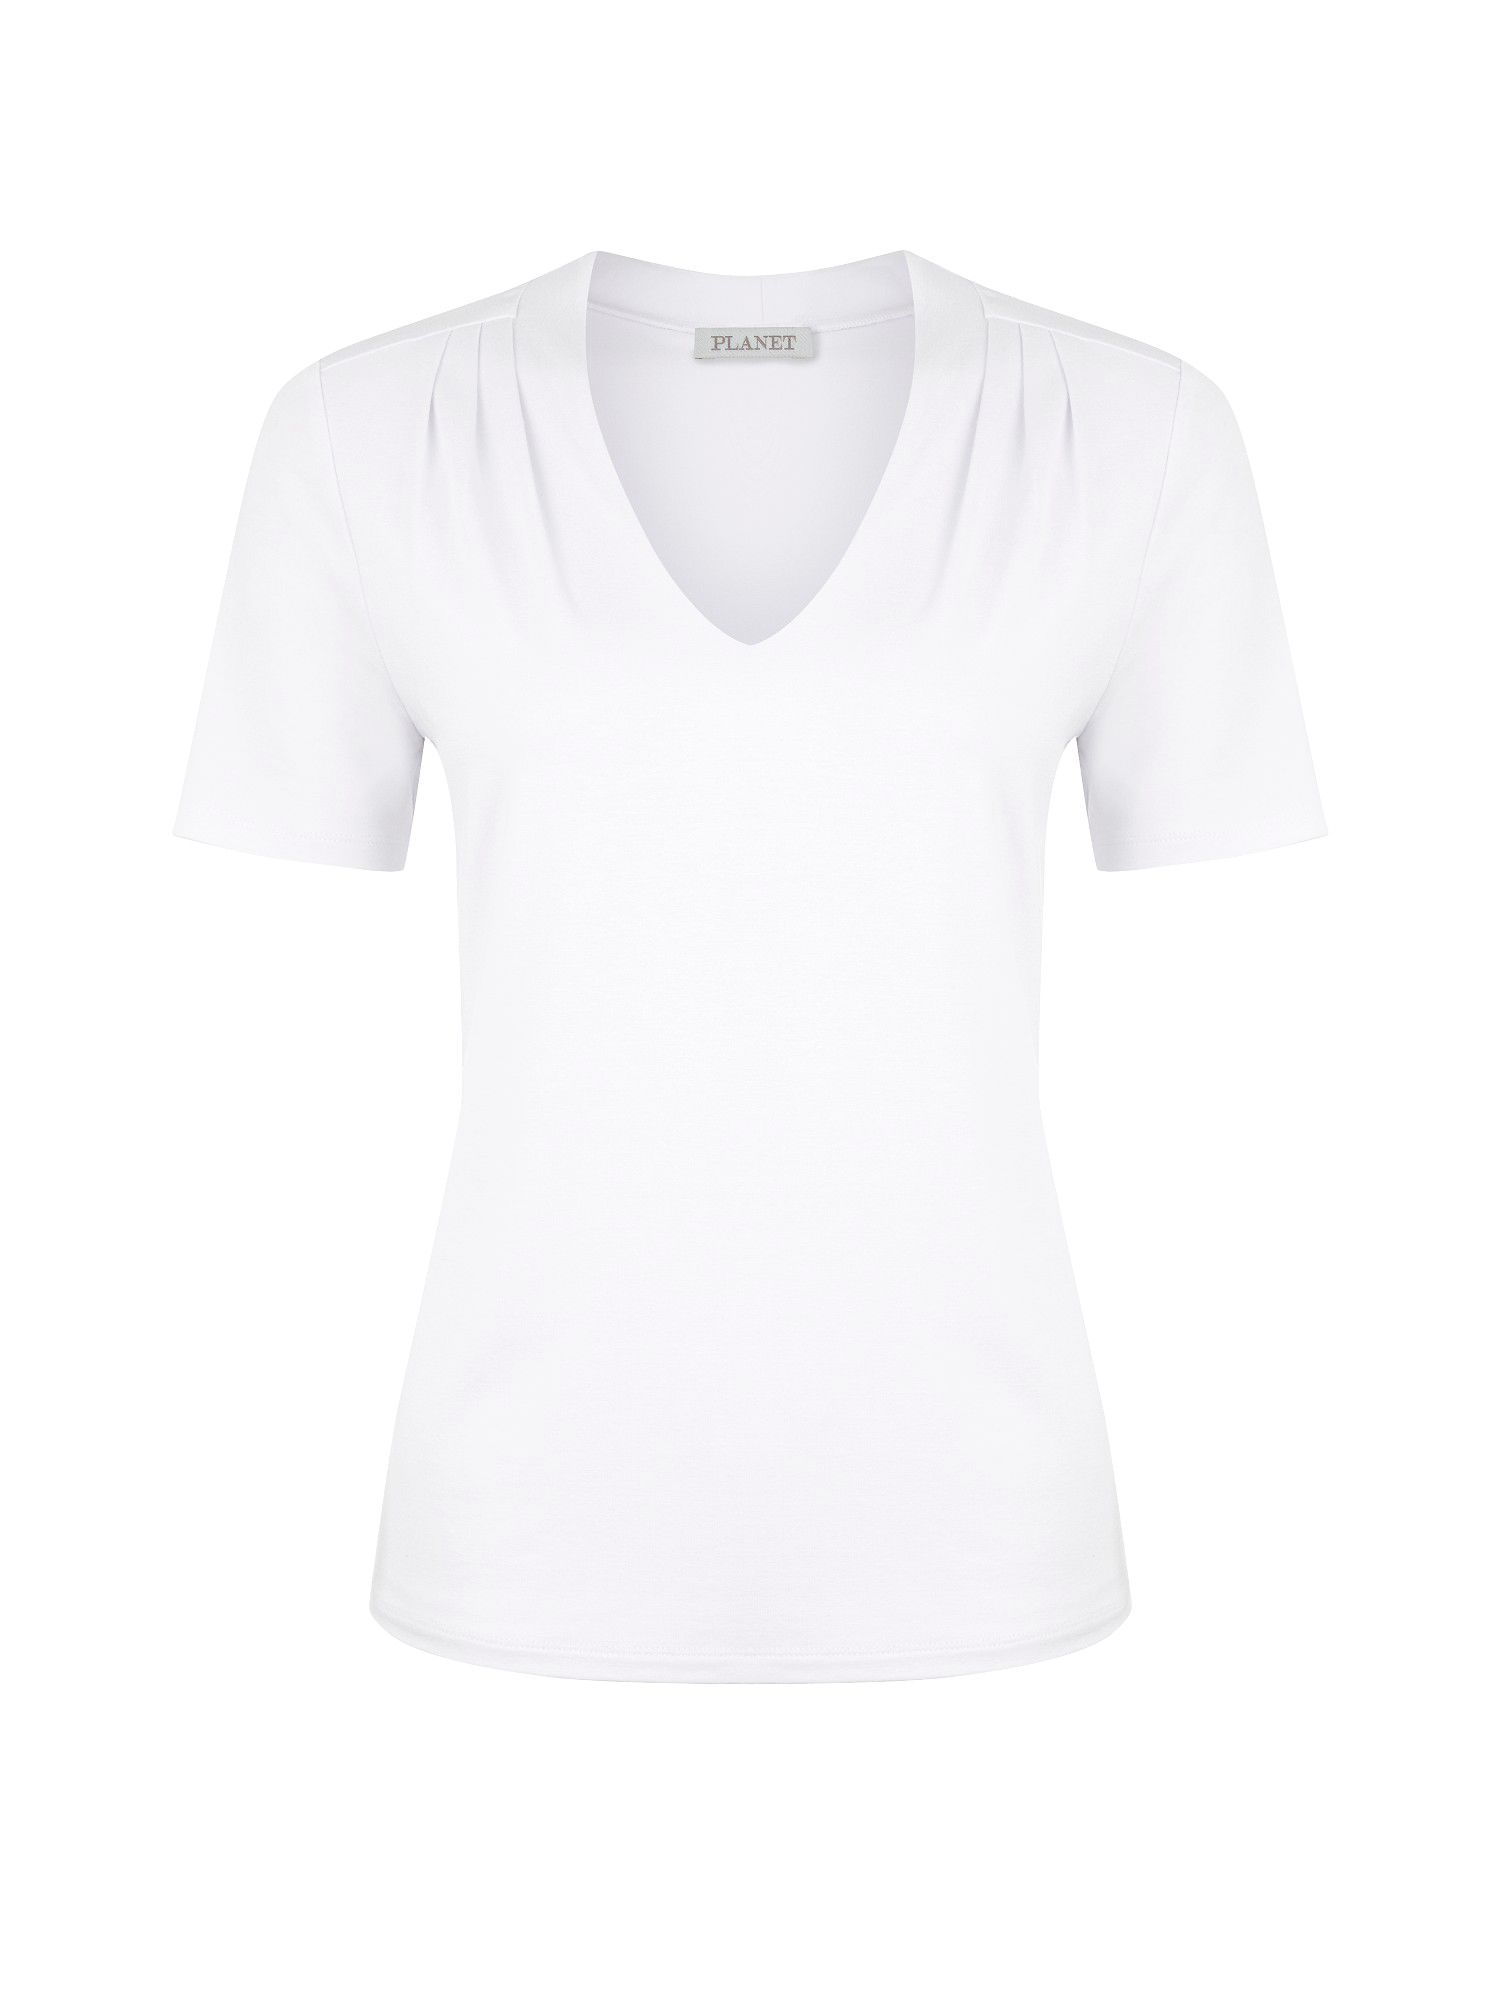 Optic white jersey top